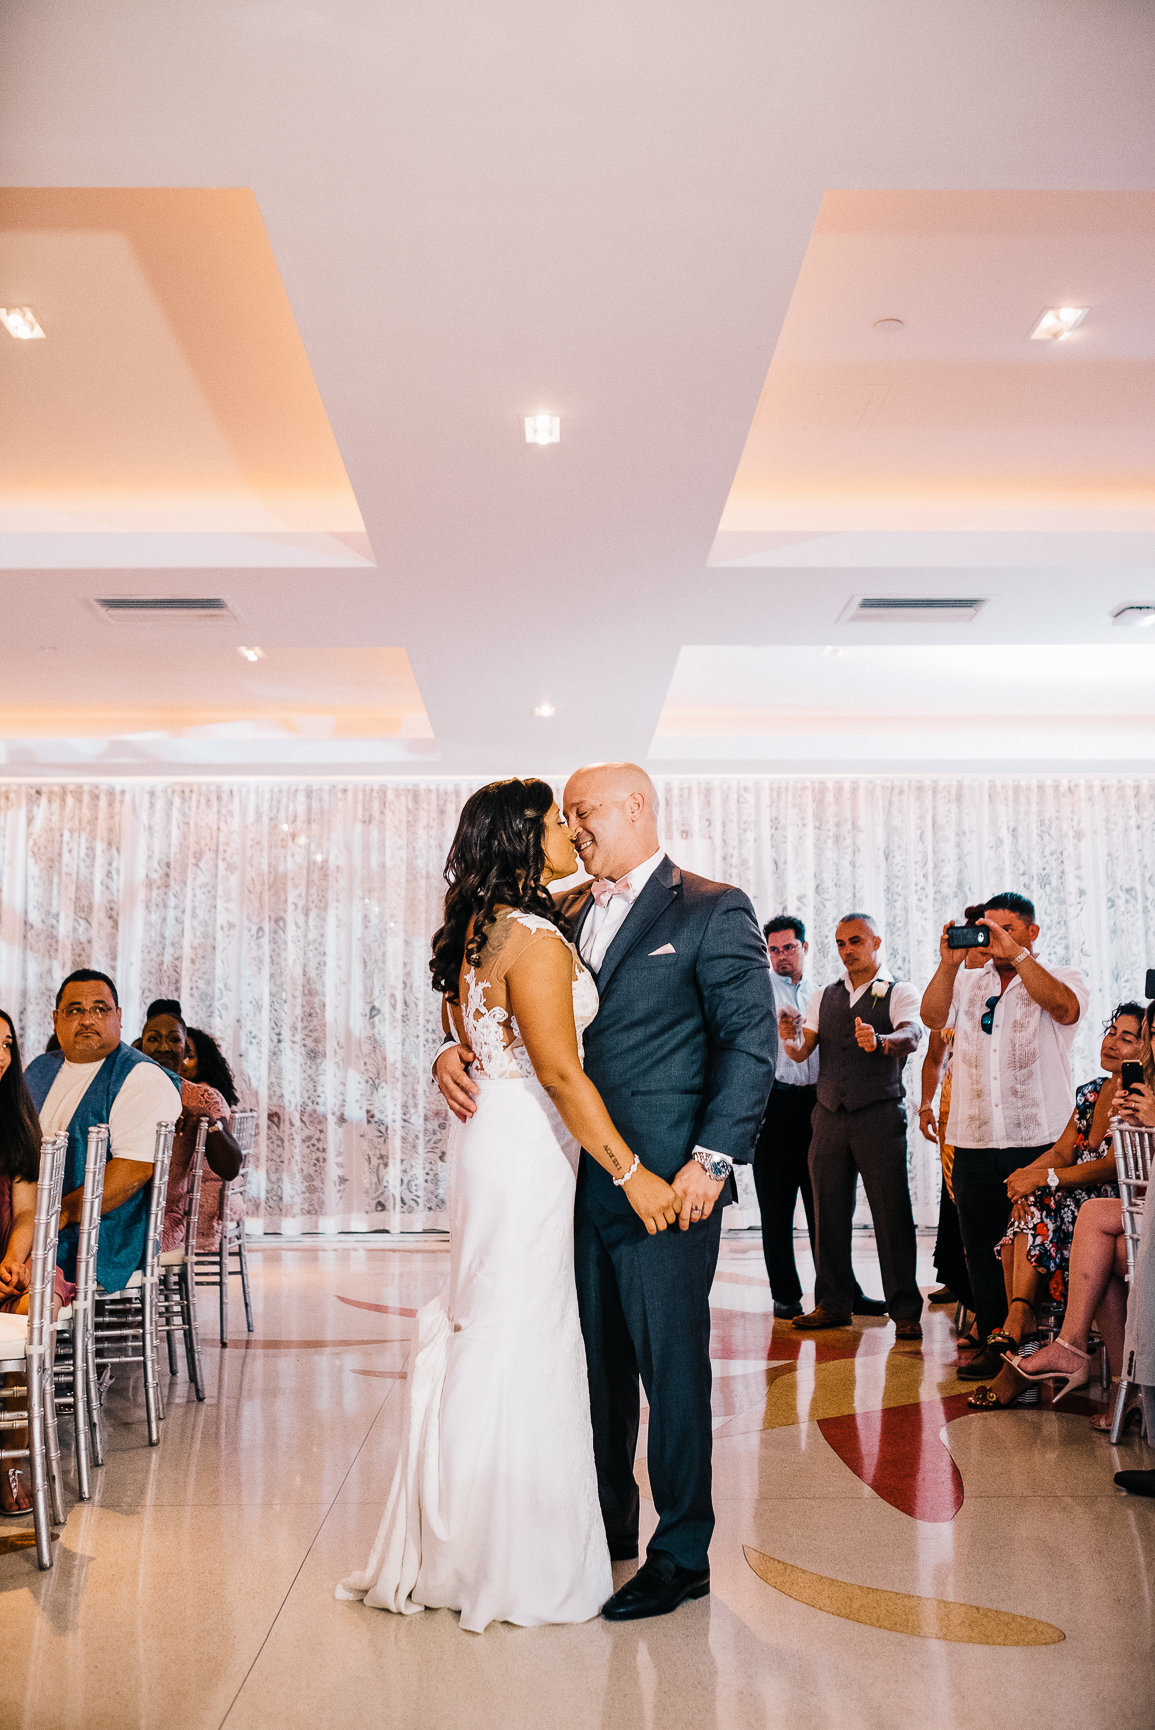 WEDDINGPHOTOGRAPHERMIAMI-76